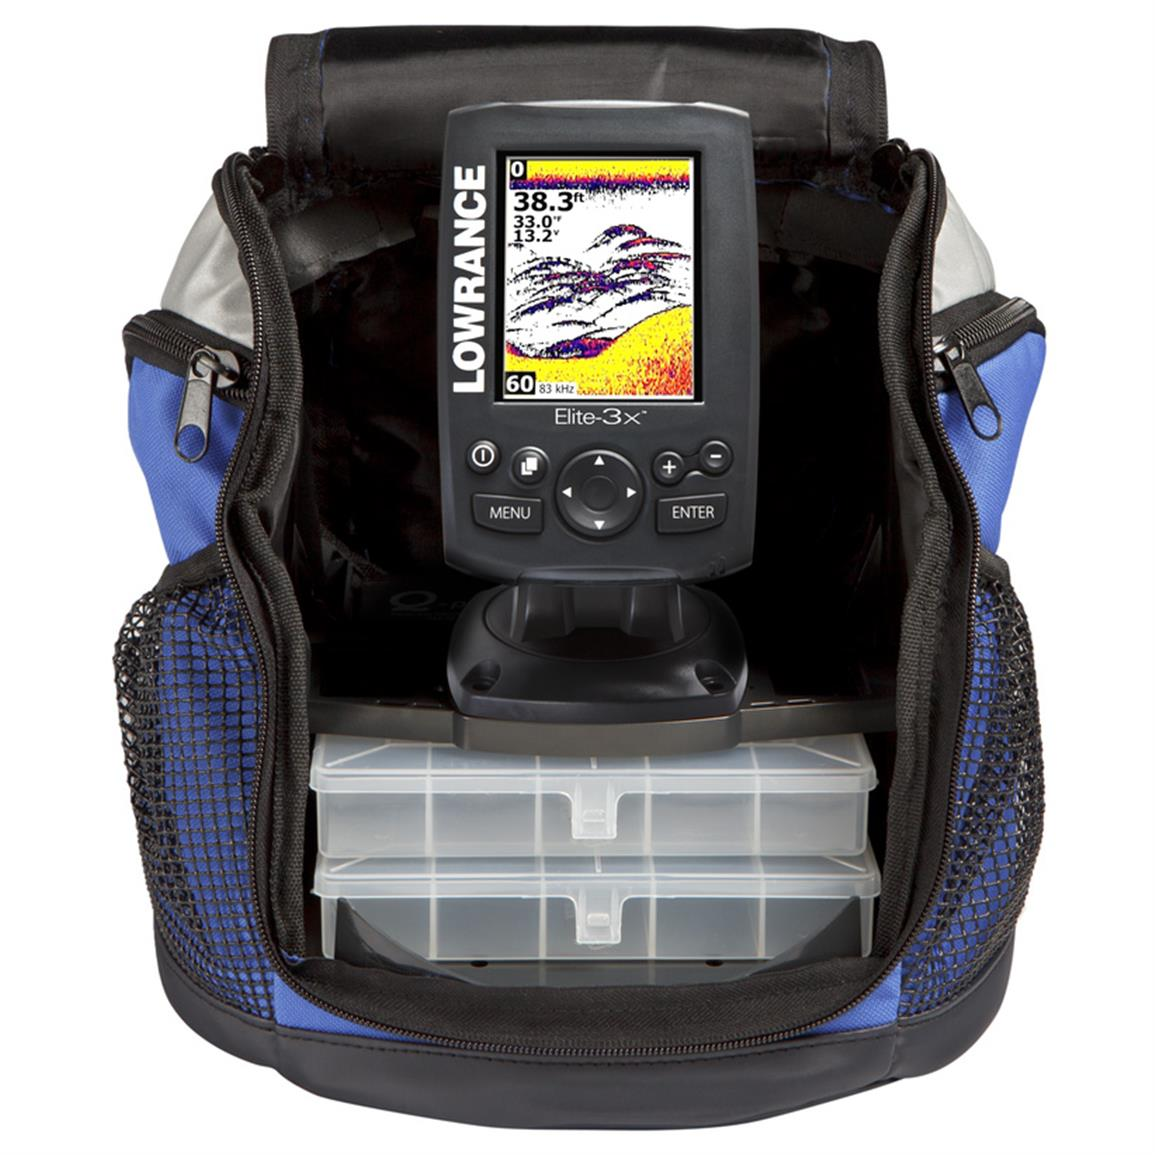 Lowrance elite 3x all season fishfinder pack 627269 ice for Ice fishing electronics